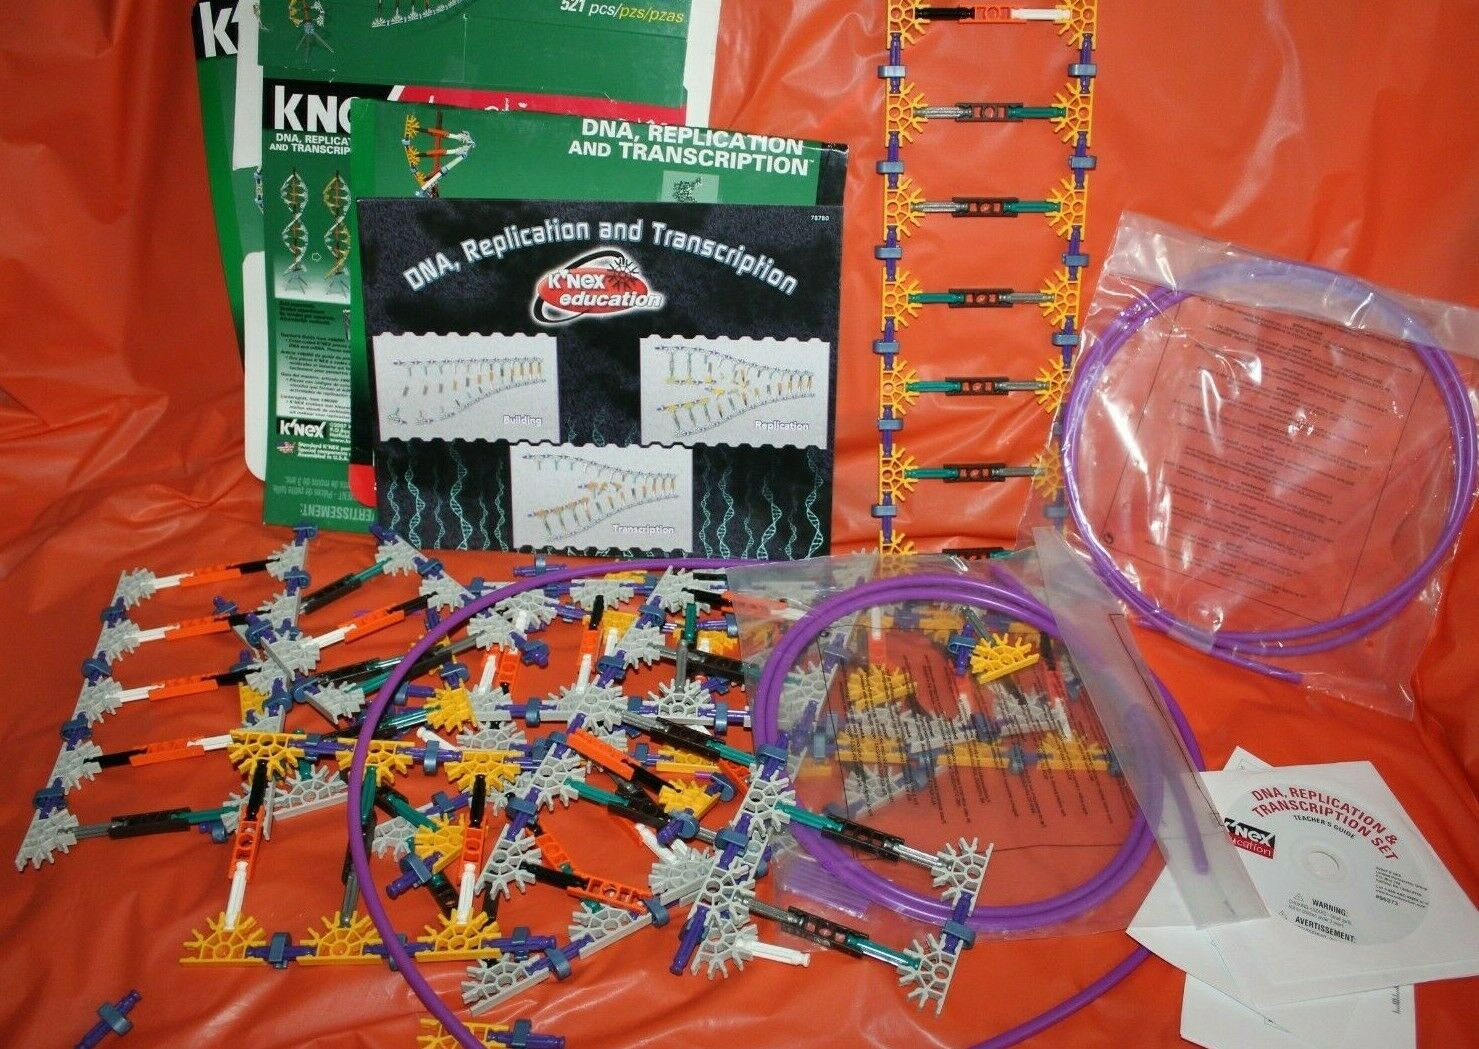 K'Nex DNA Replication And Transcription Educational Learning Toy Set + Software